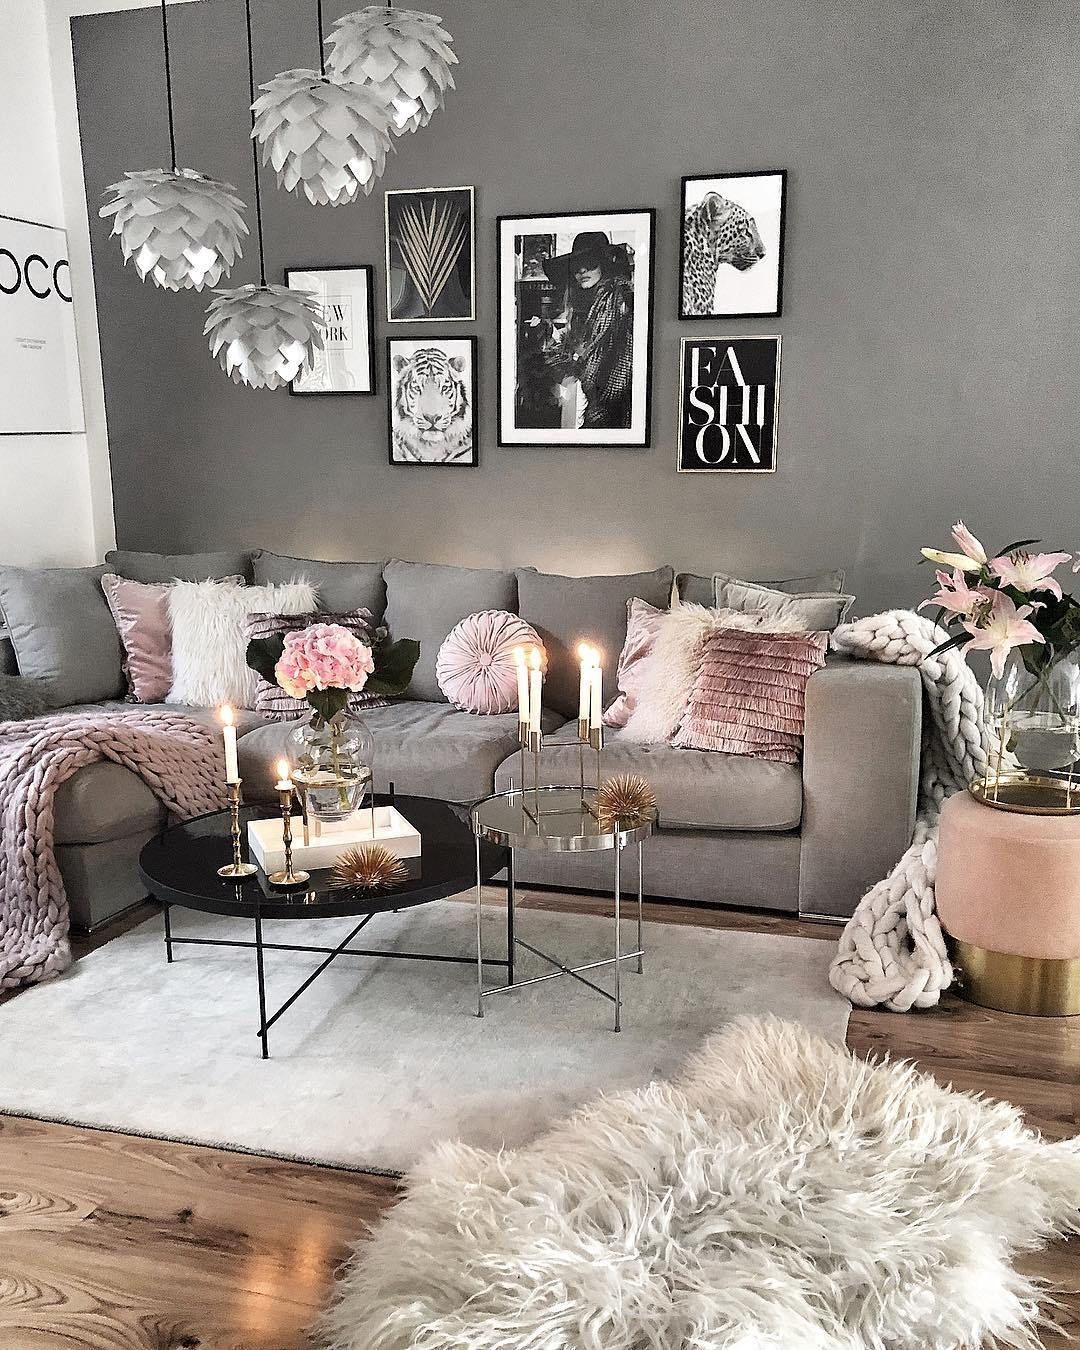 Recreate This Grey And Pink Cozy Living Room Decor Livingroom Decor Living Room Decor Cozy Pink Living Room